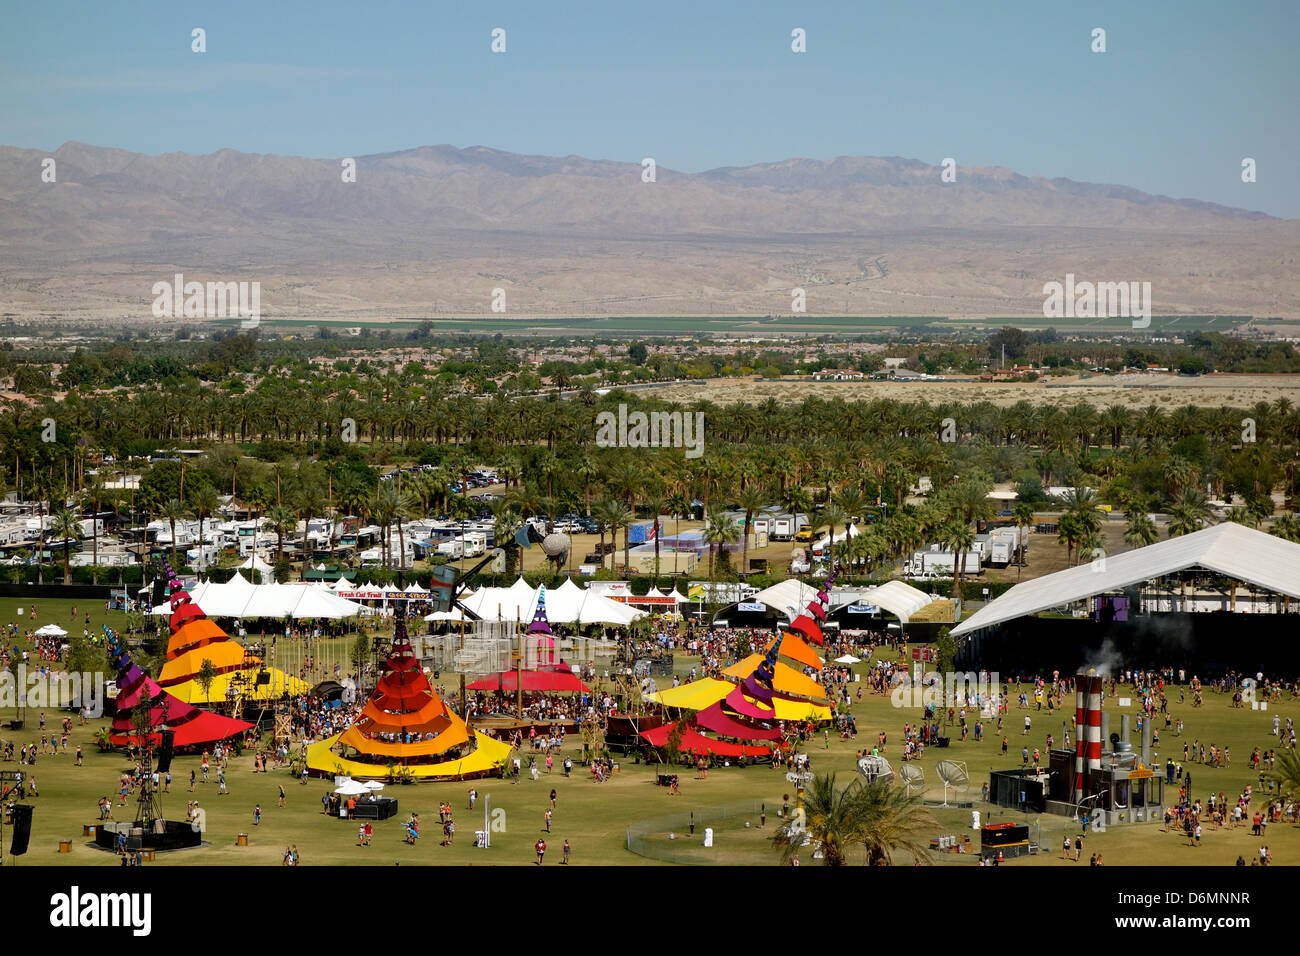 indio-california-usa-19th-april-2013-aer